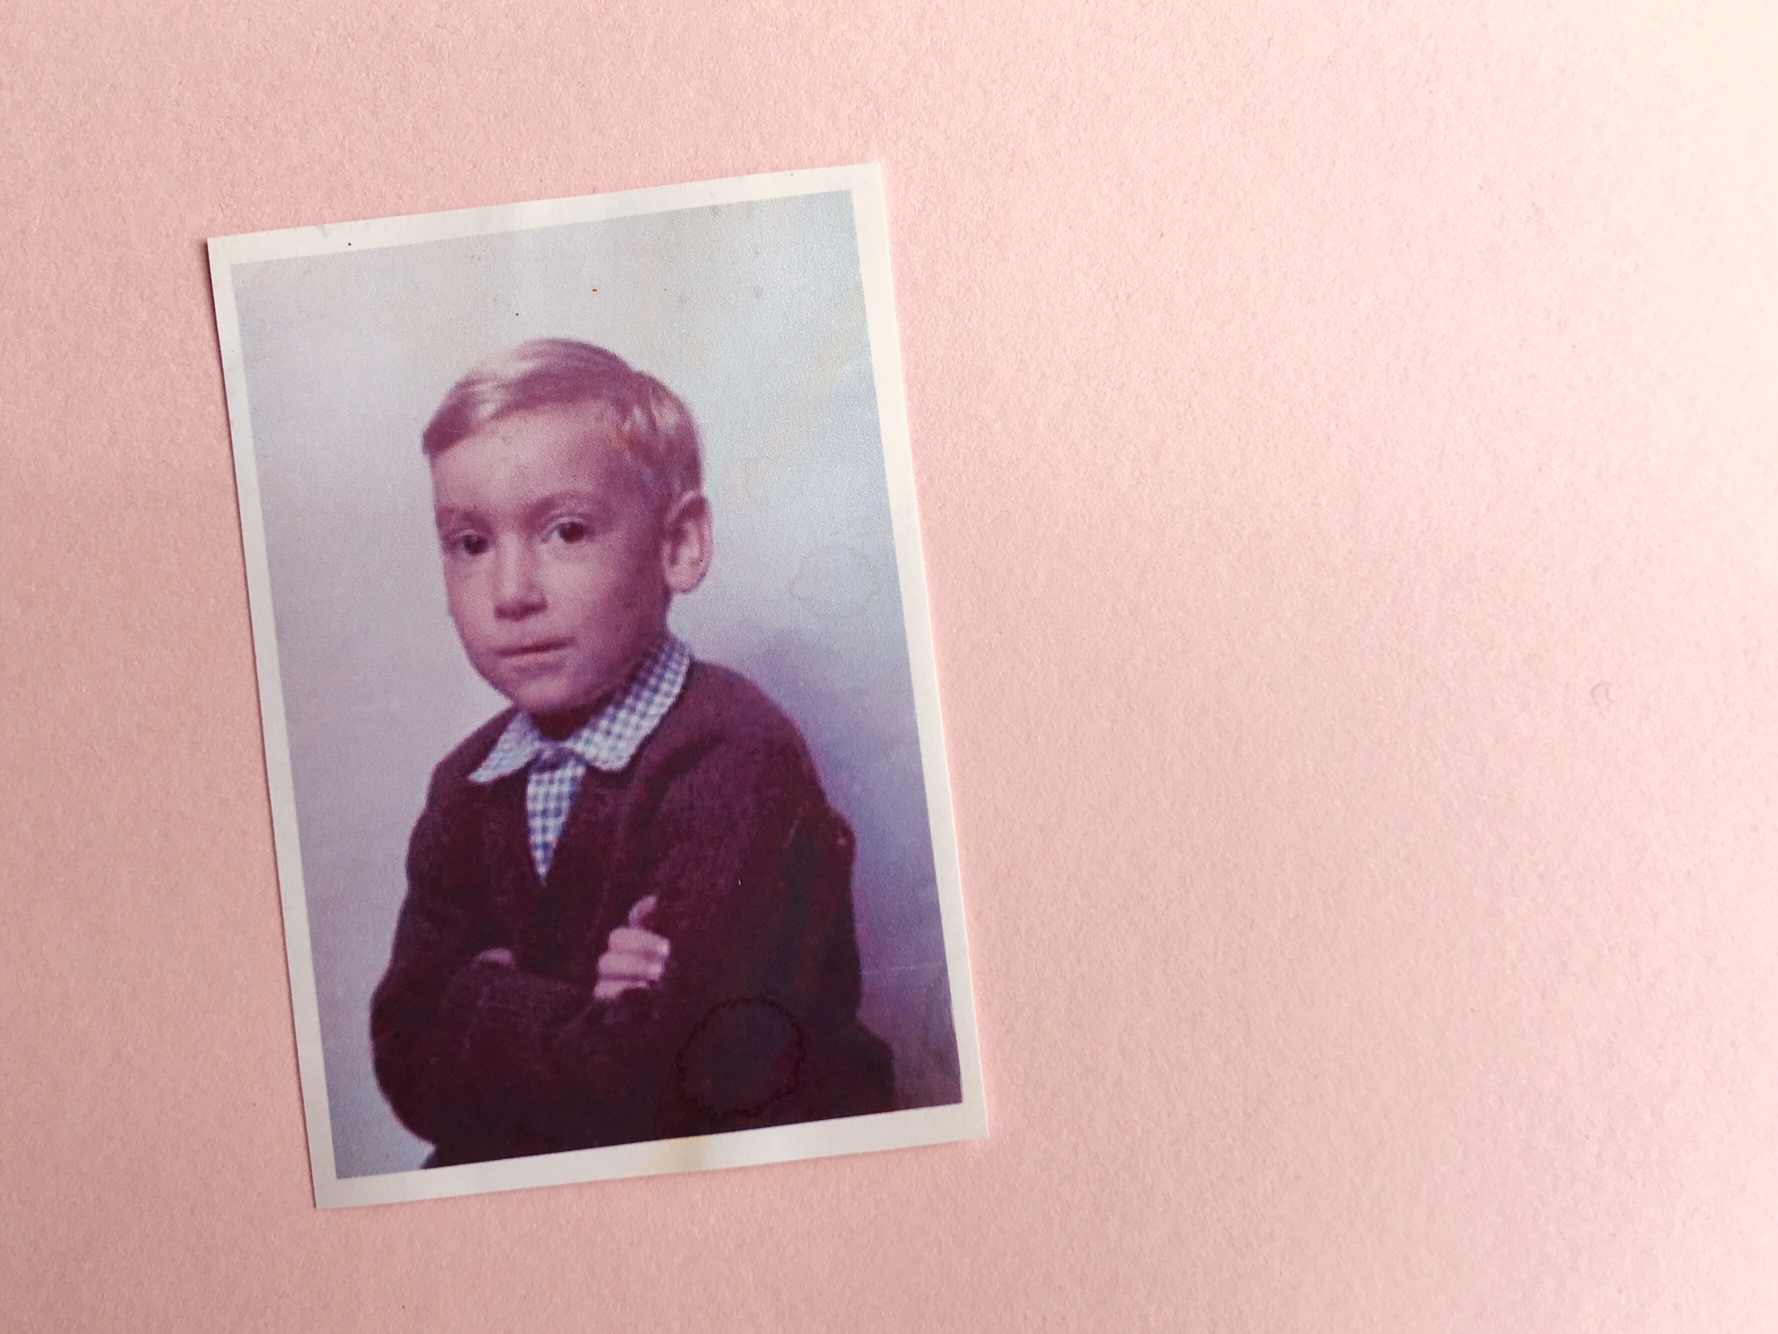 a photo of artist Michael Statham as a young boy